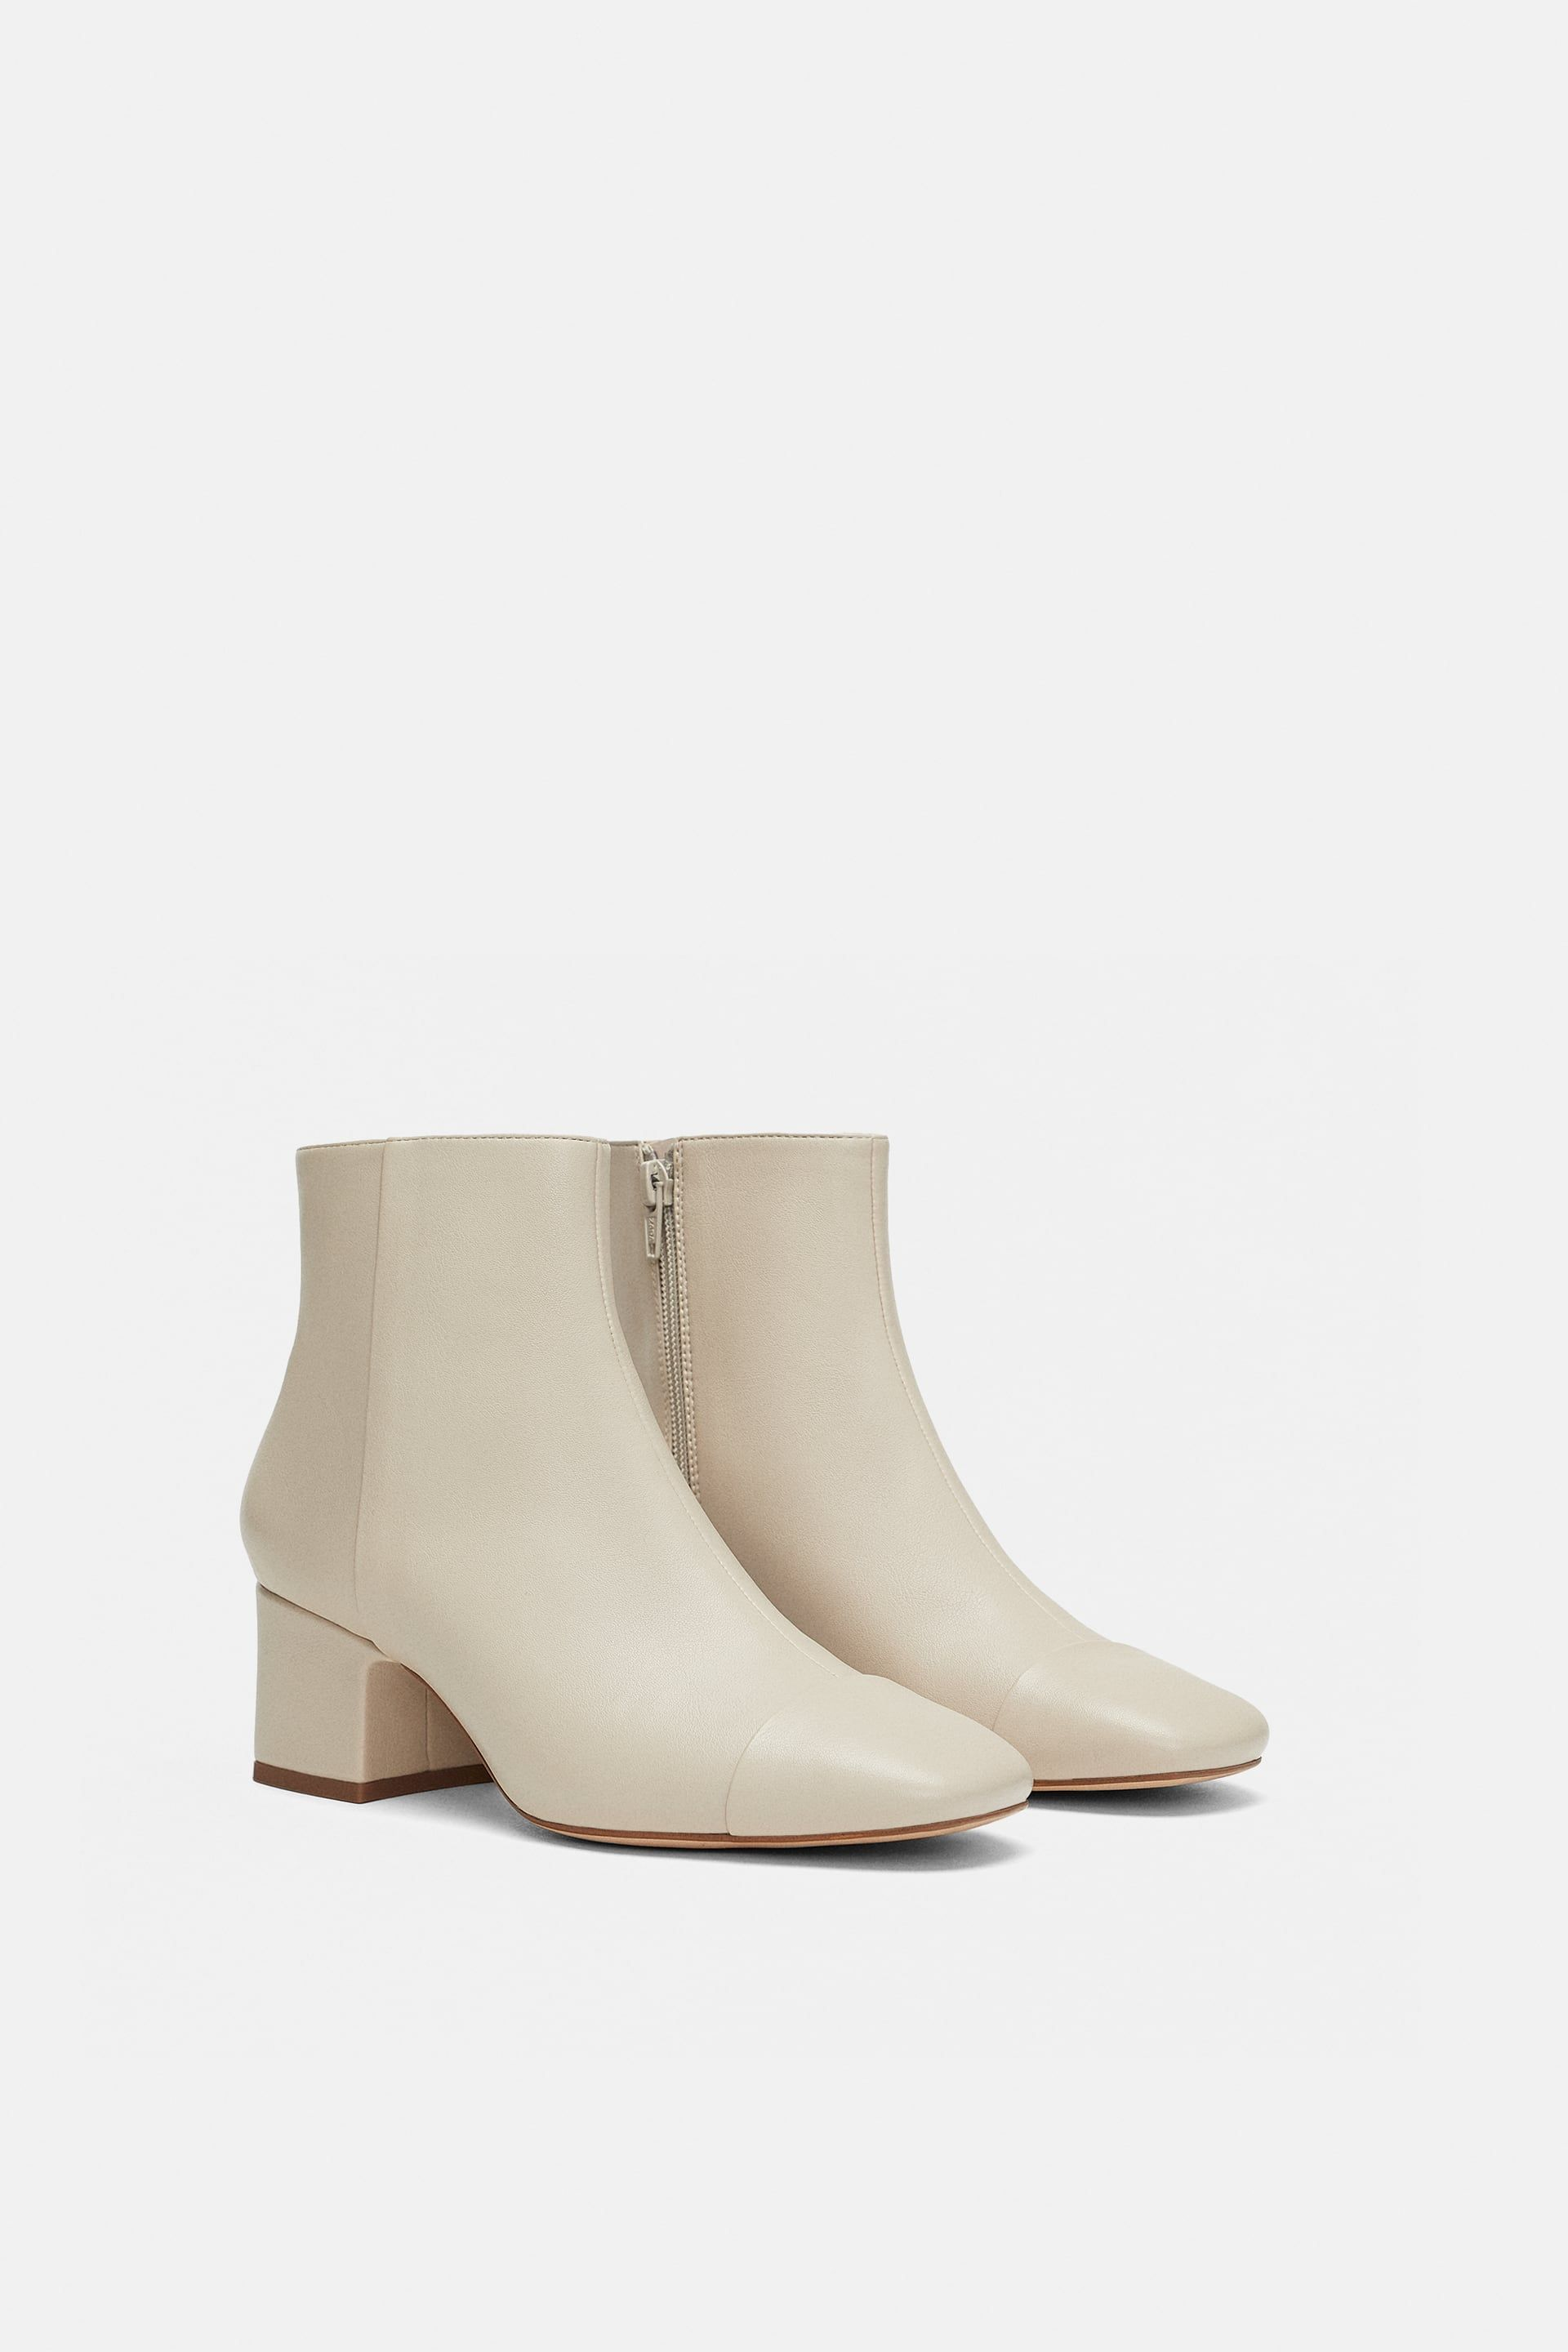 b510abb3764 ZARA - WOMAN - HEELED ANKLE BOOTS WITH TOE DETAIL